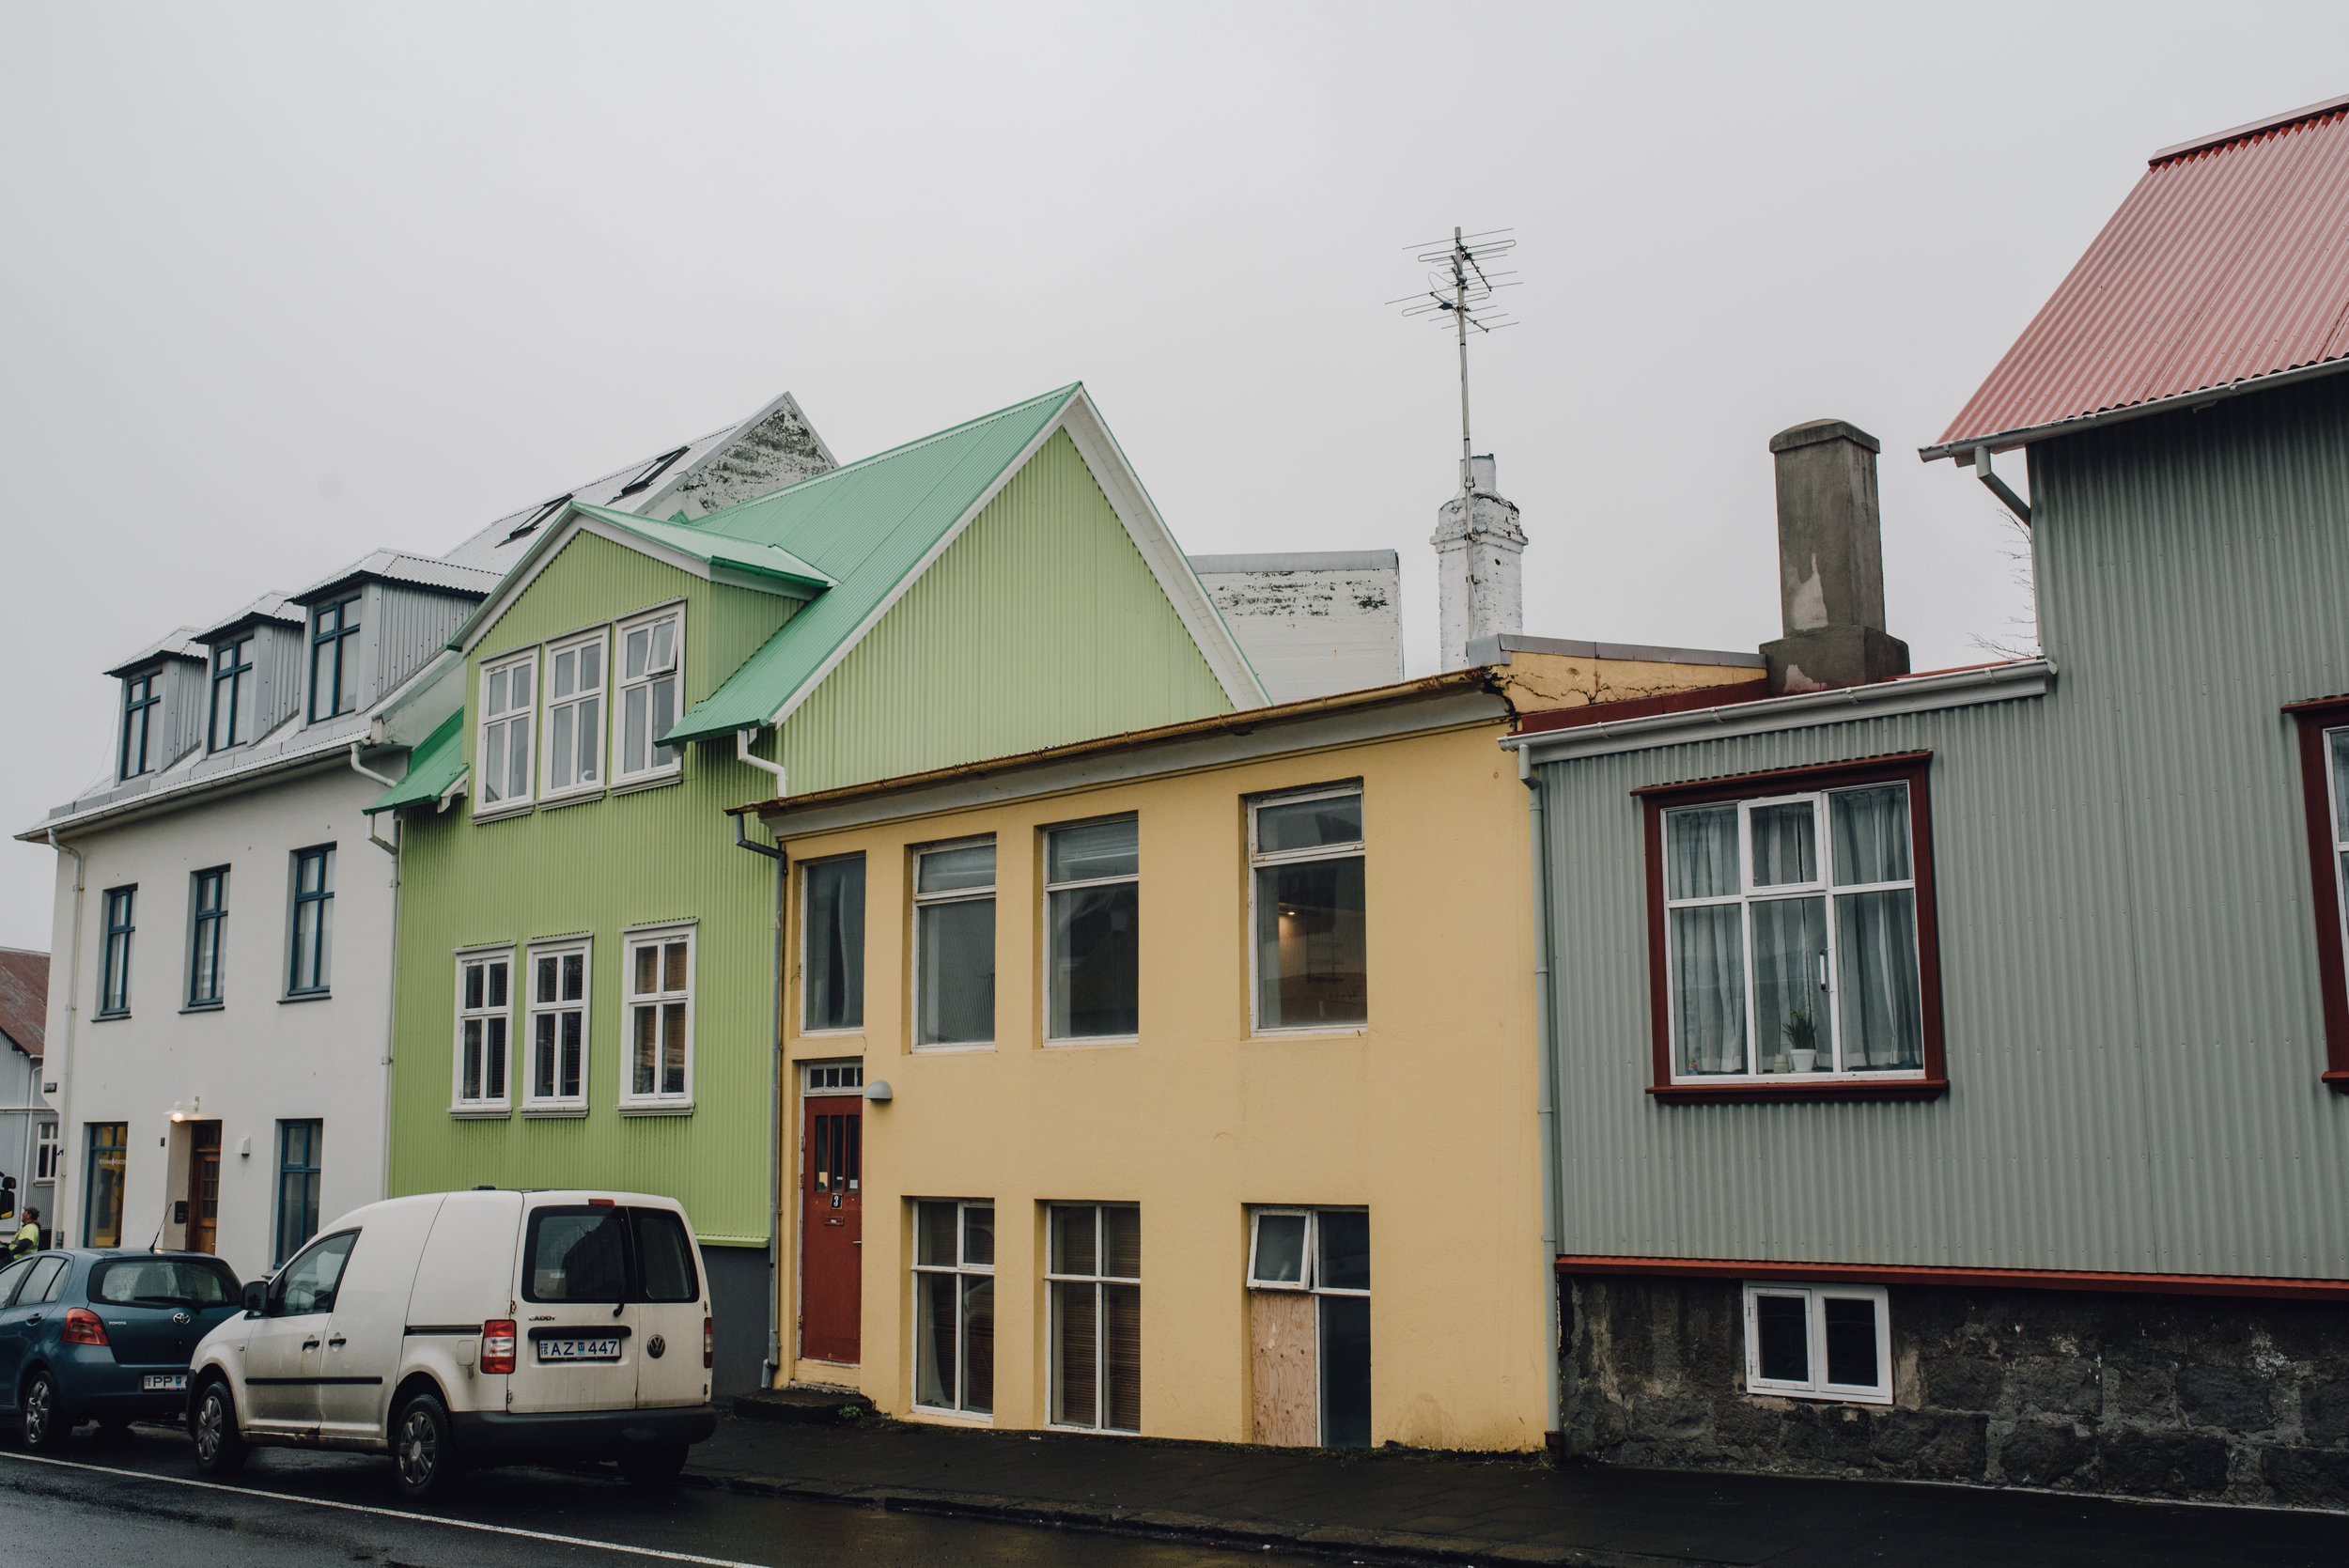 Main and Simple Photography_2017_Travel_April_ICELAND0410-54.jpg